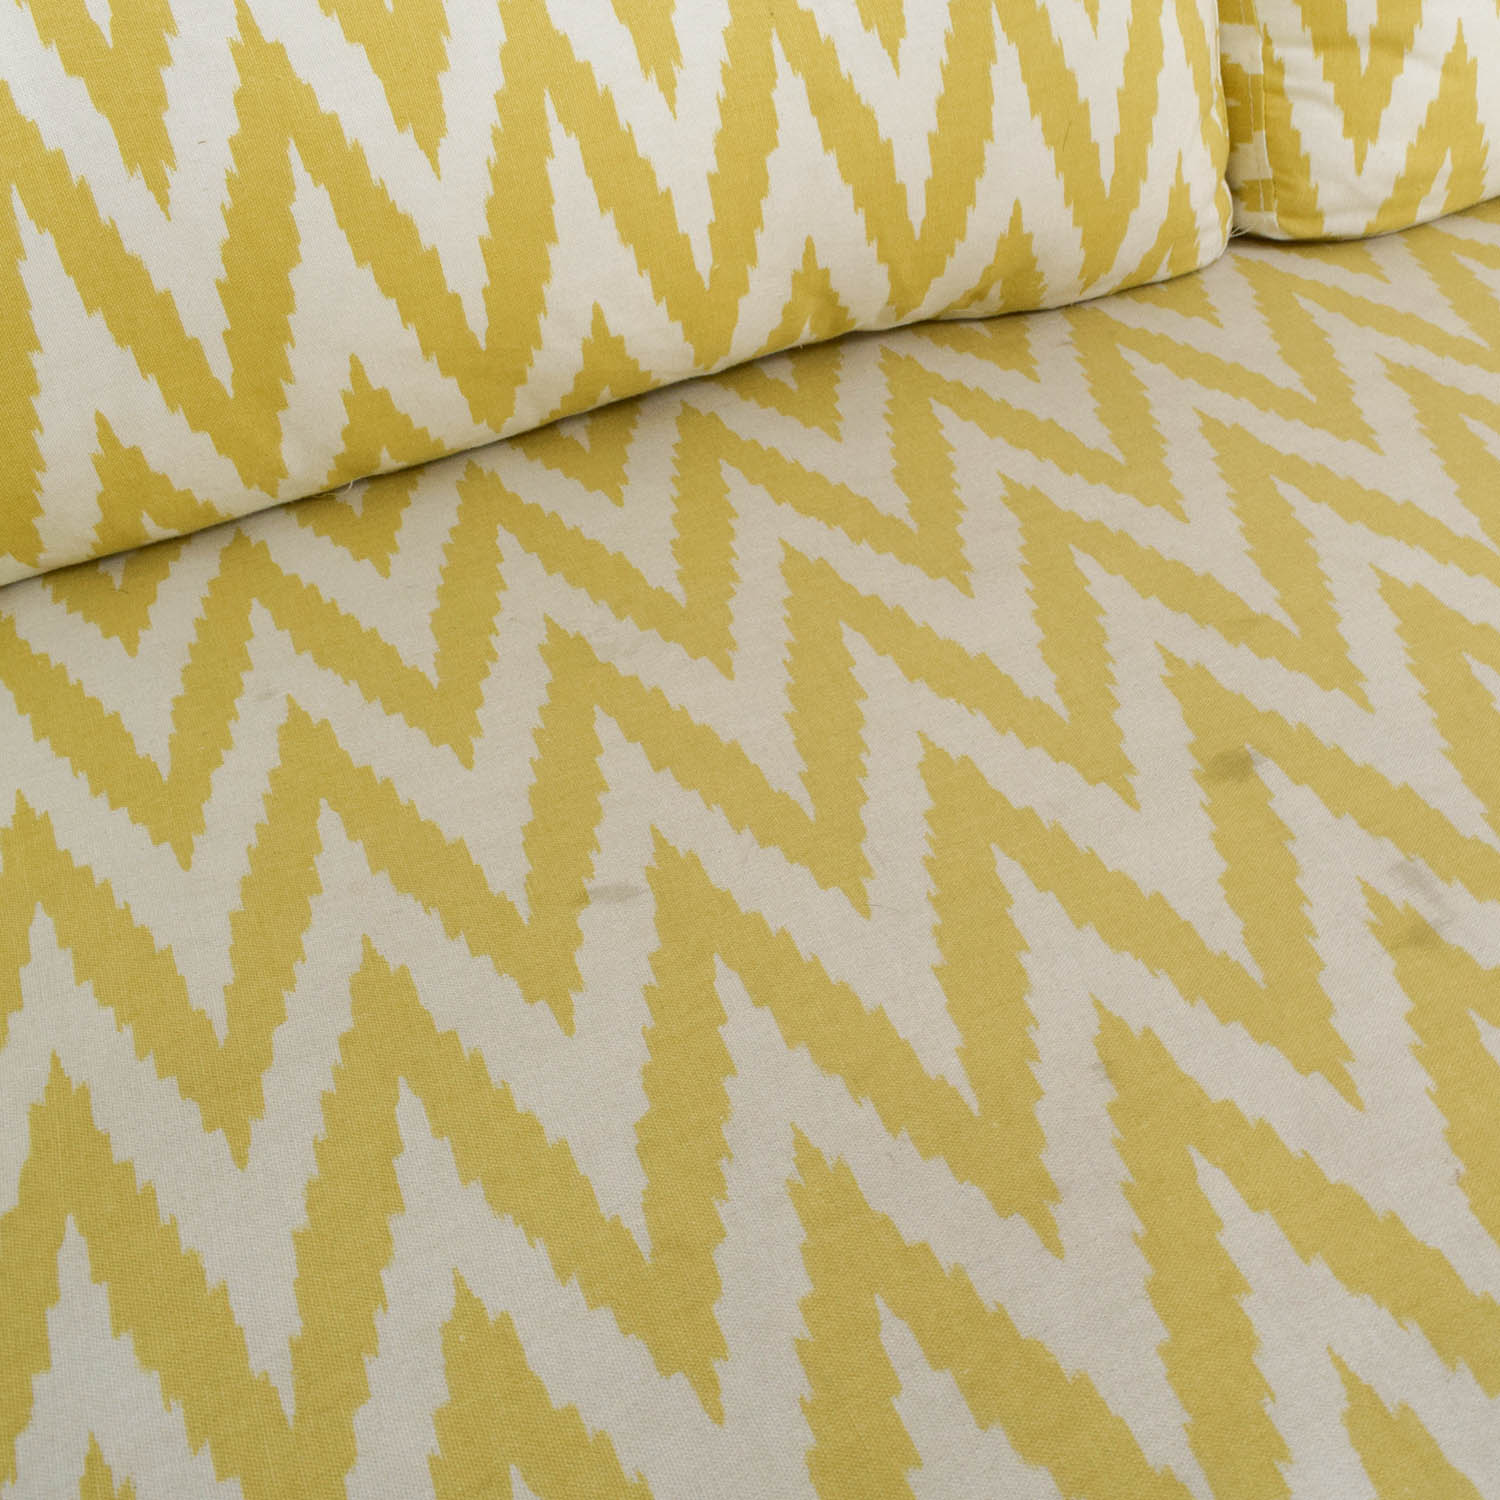 buy West Elm West Elm Yellow and White Single Cushion Sofa online